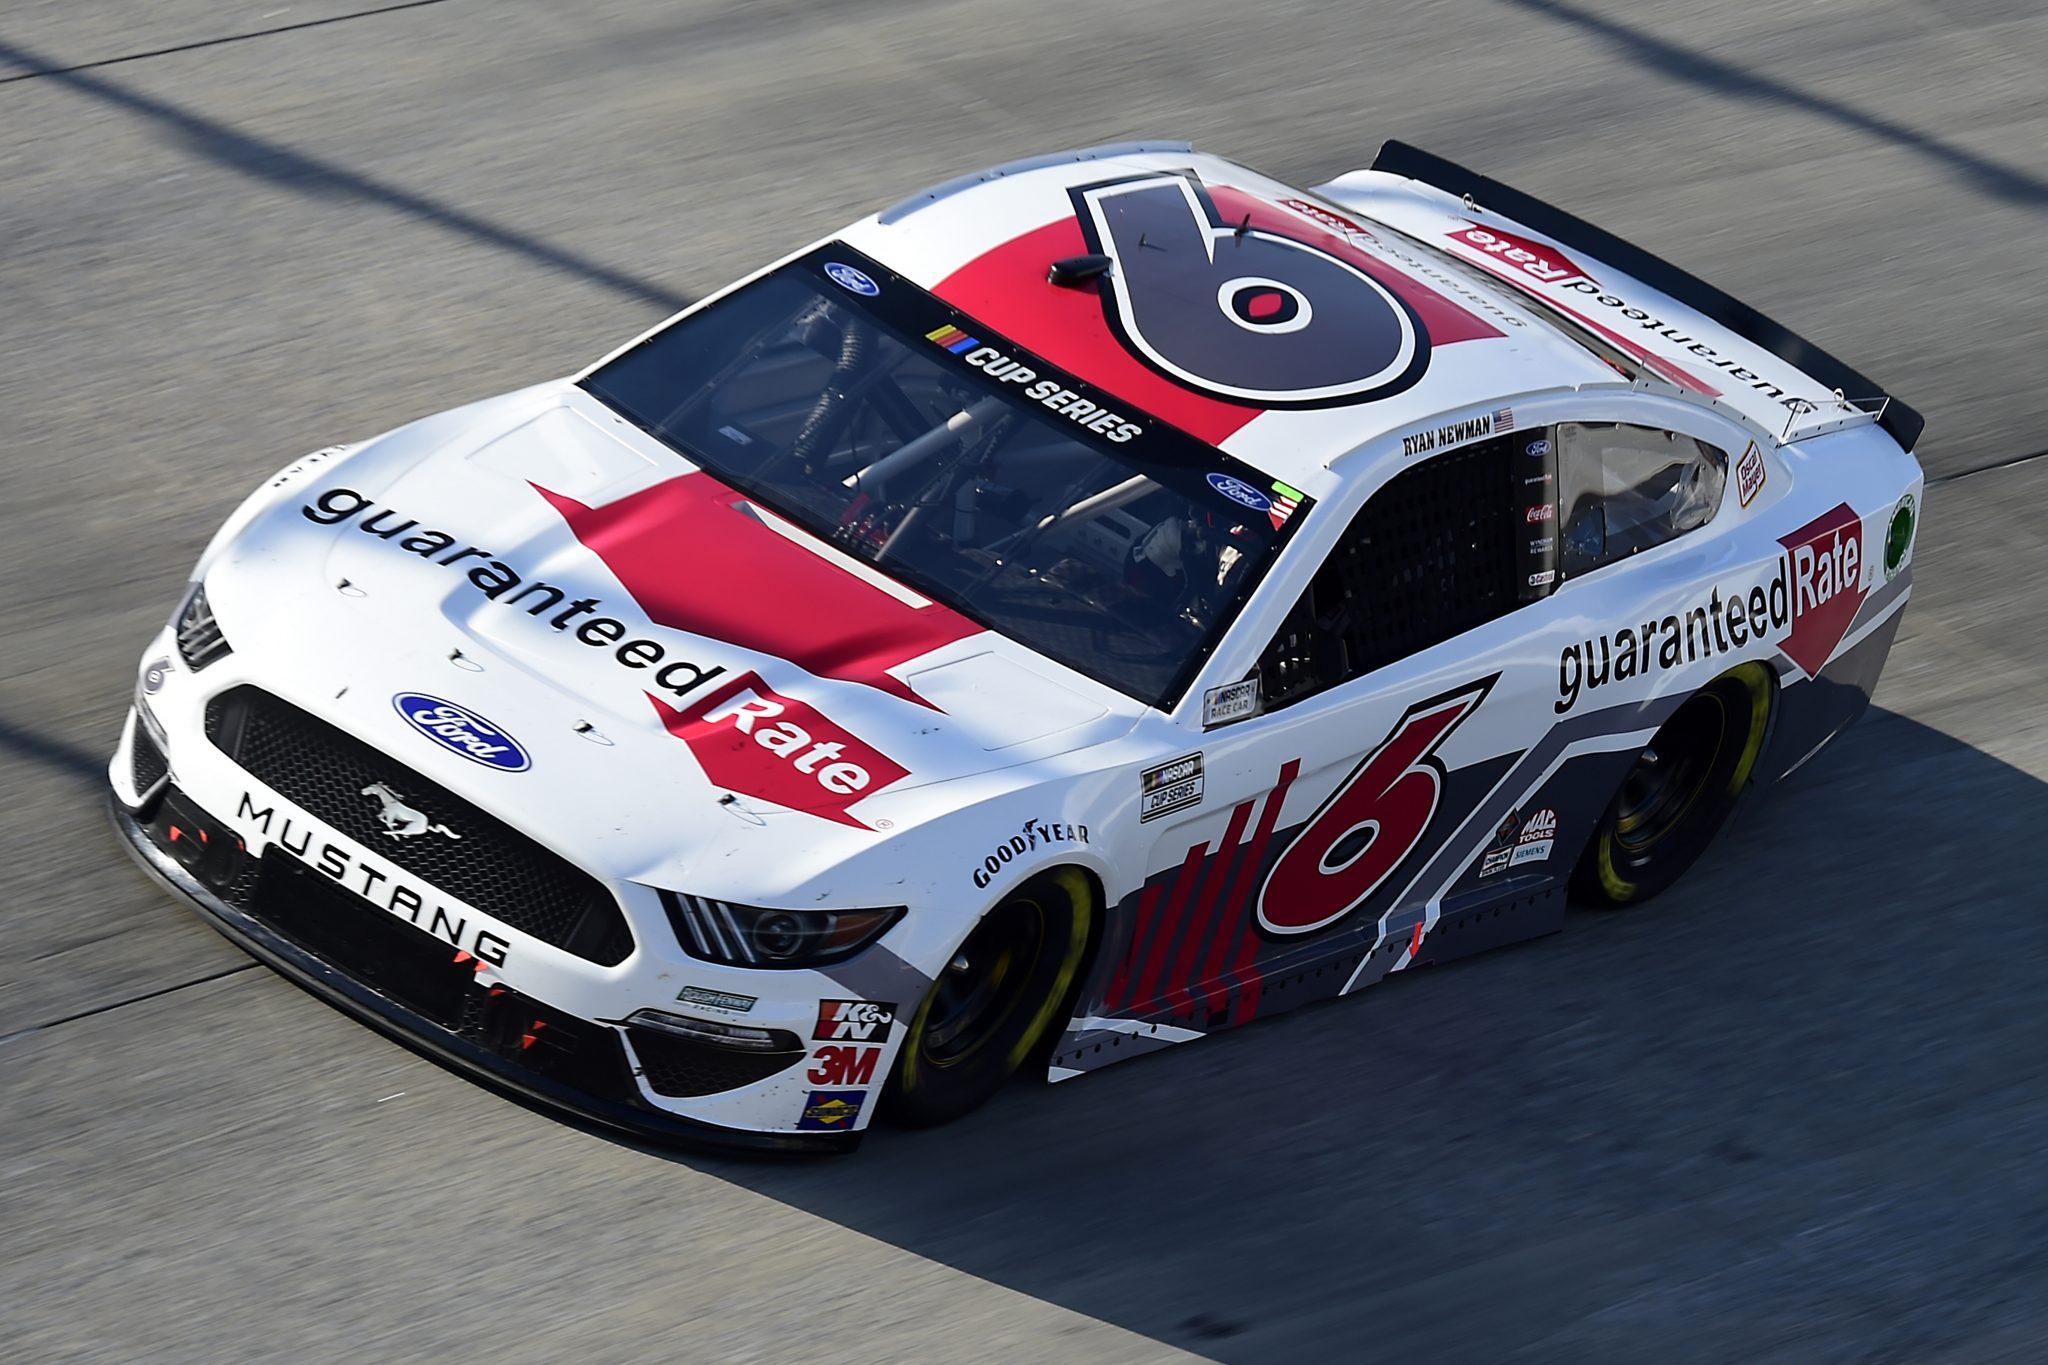 DOVER, DELAWARE - AUGUST 23: Ryan Newman, driver of the #6 Guaranteed Rate Ford, drives during the NASCAR Cup Series Drydene 311 at Dover International Speedway on August 23, 2020 in Dover, Delaware. (Photo by Jared C. Tilton/Getty Images) | Getty Images